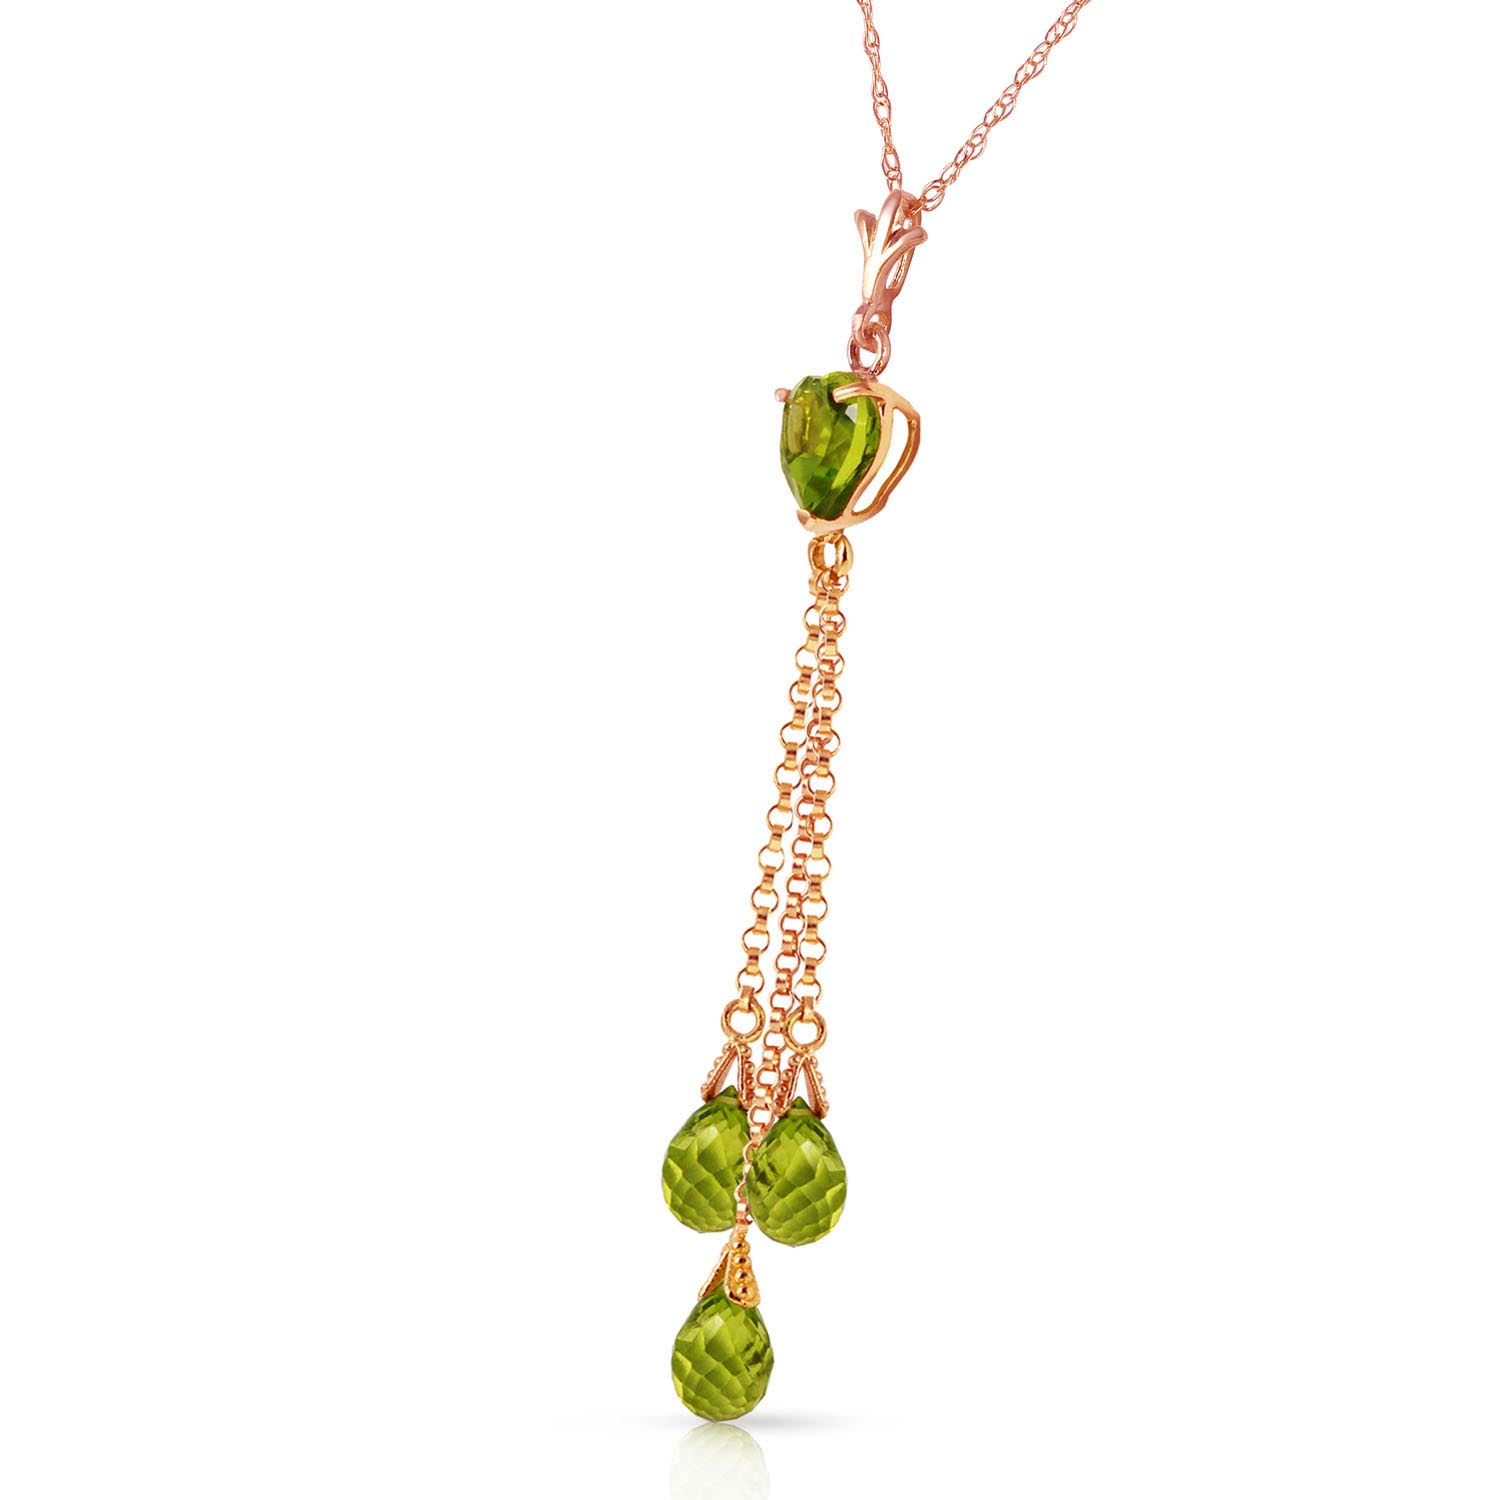 Peridot Comet Tail Heart Pendant Necklace 4.75ctw in 14K Rose Gold